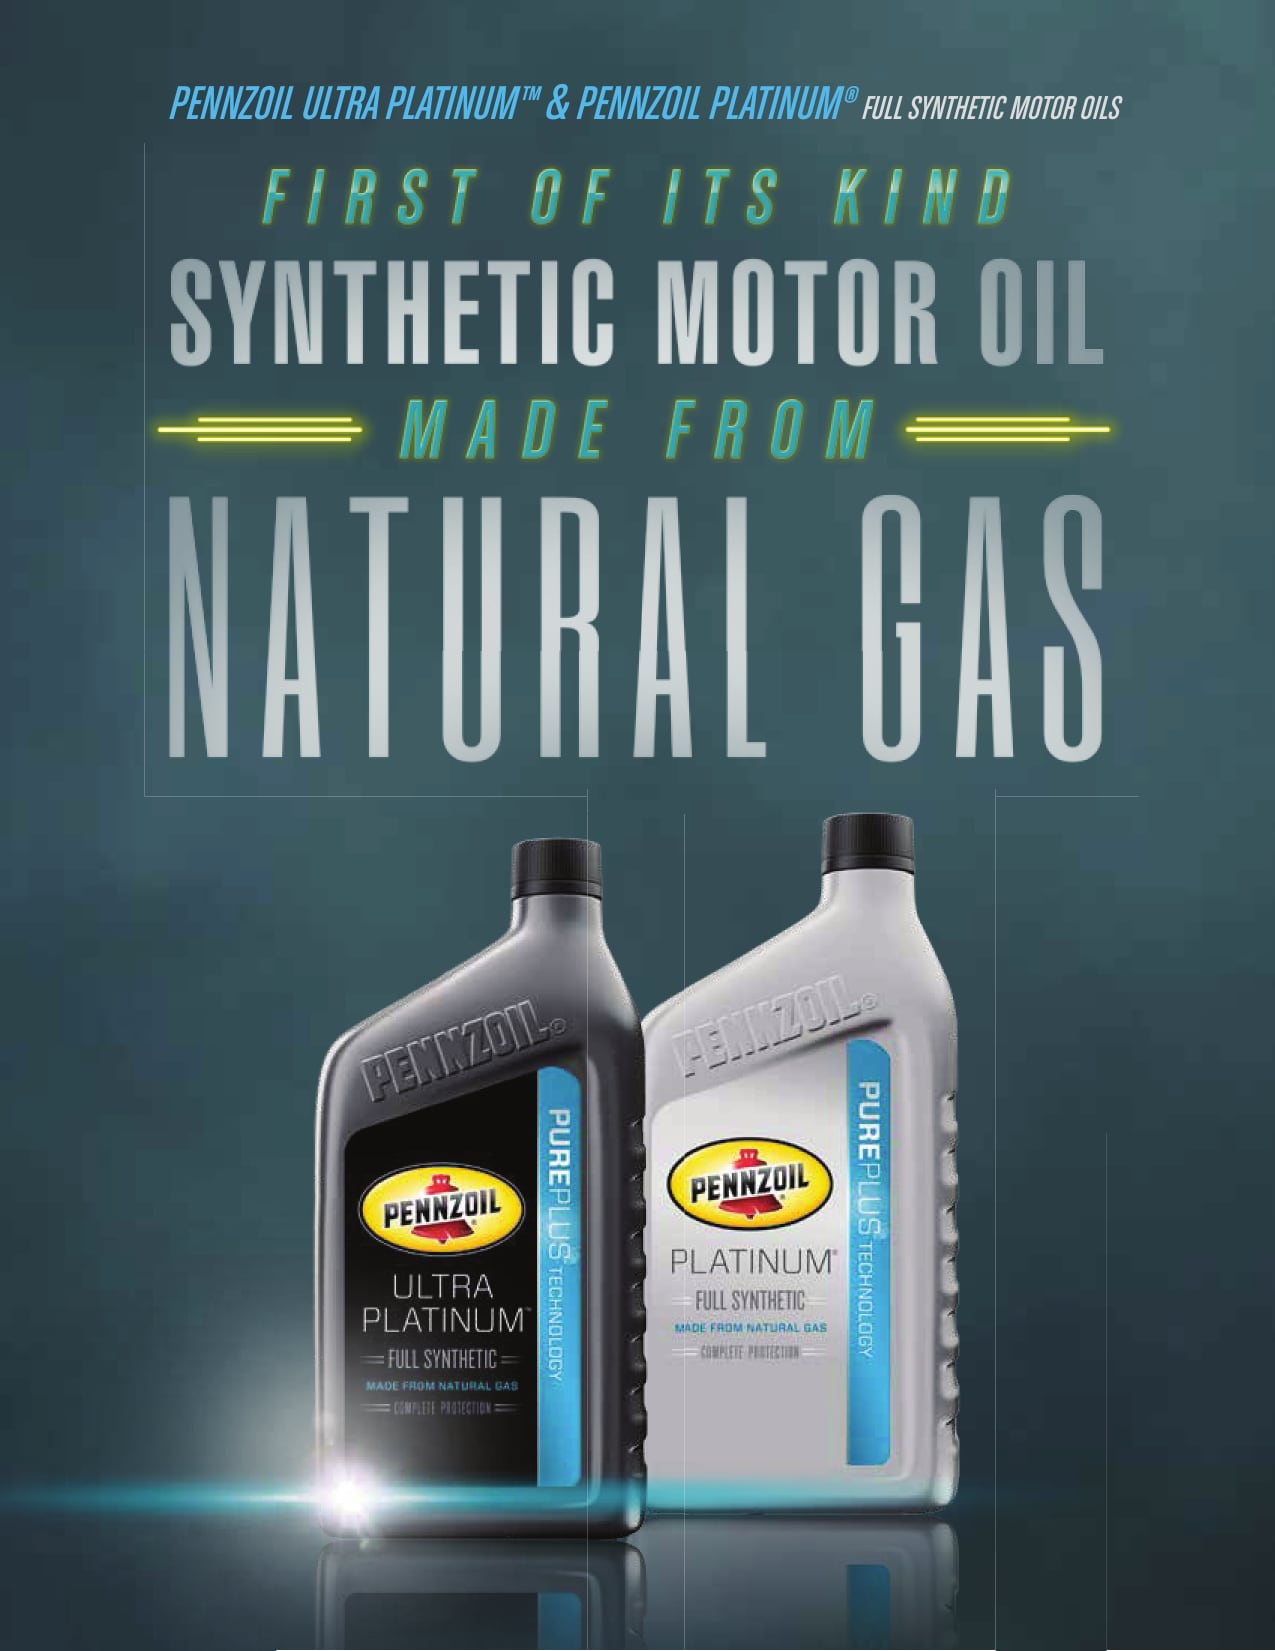 Benefits of Synthetic Motor Oil